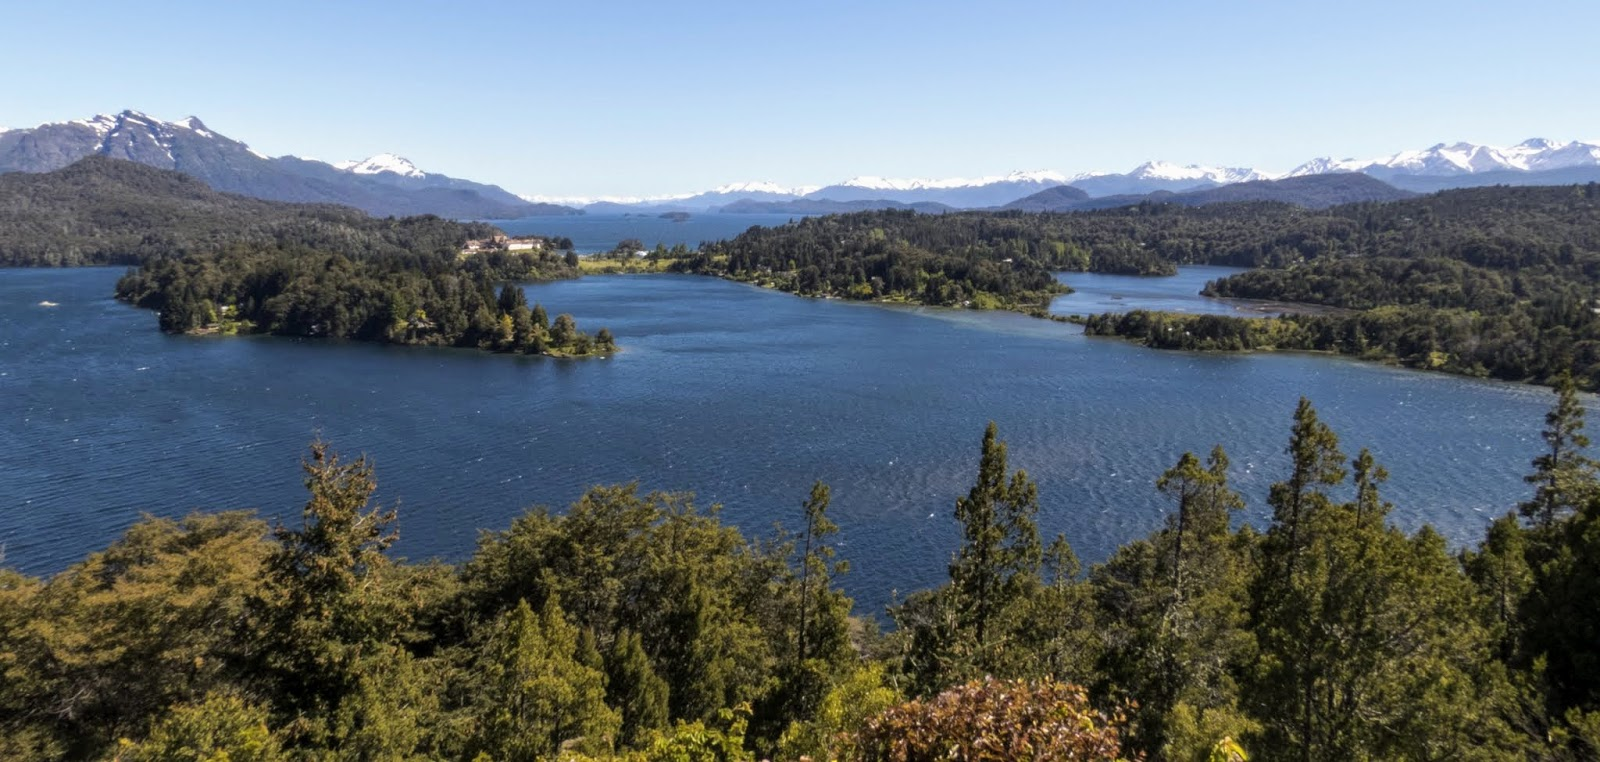 Circuito Chico Bariloche : What to do in bariloche argentina including self drive day trips